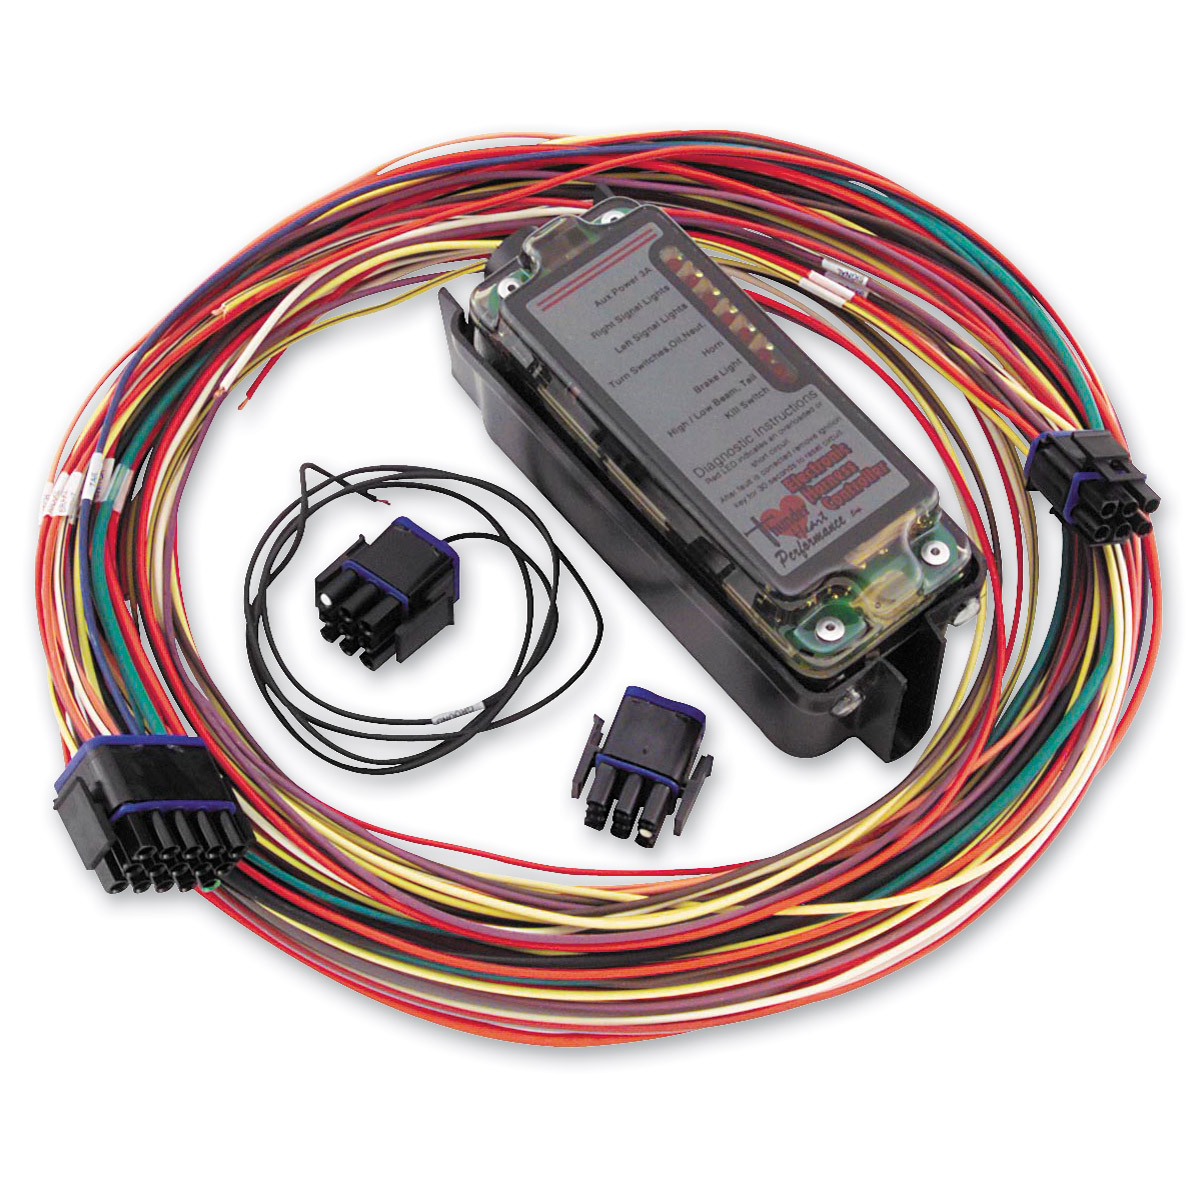 Wiring Harness Kit Schematic Diagram Ultima Thunder Heart Performance Complete Electronic Controller For Led Lights